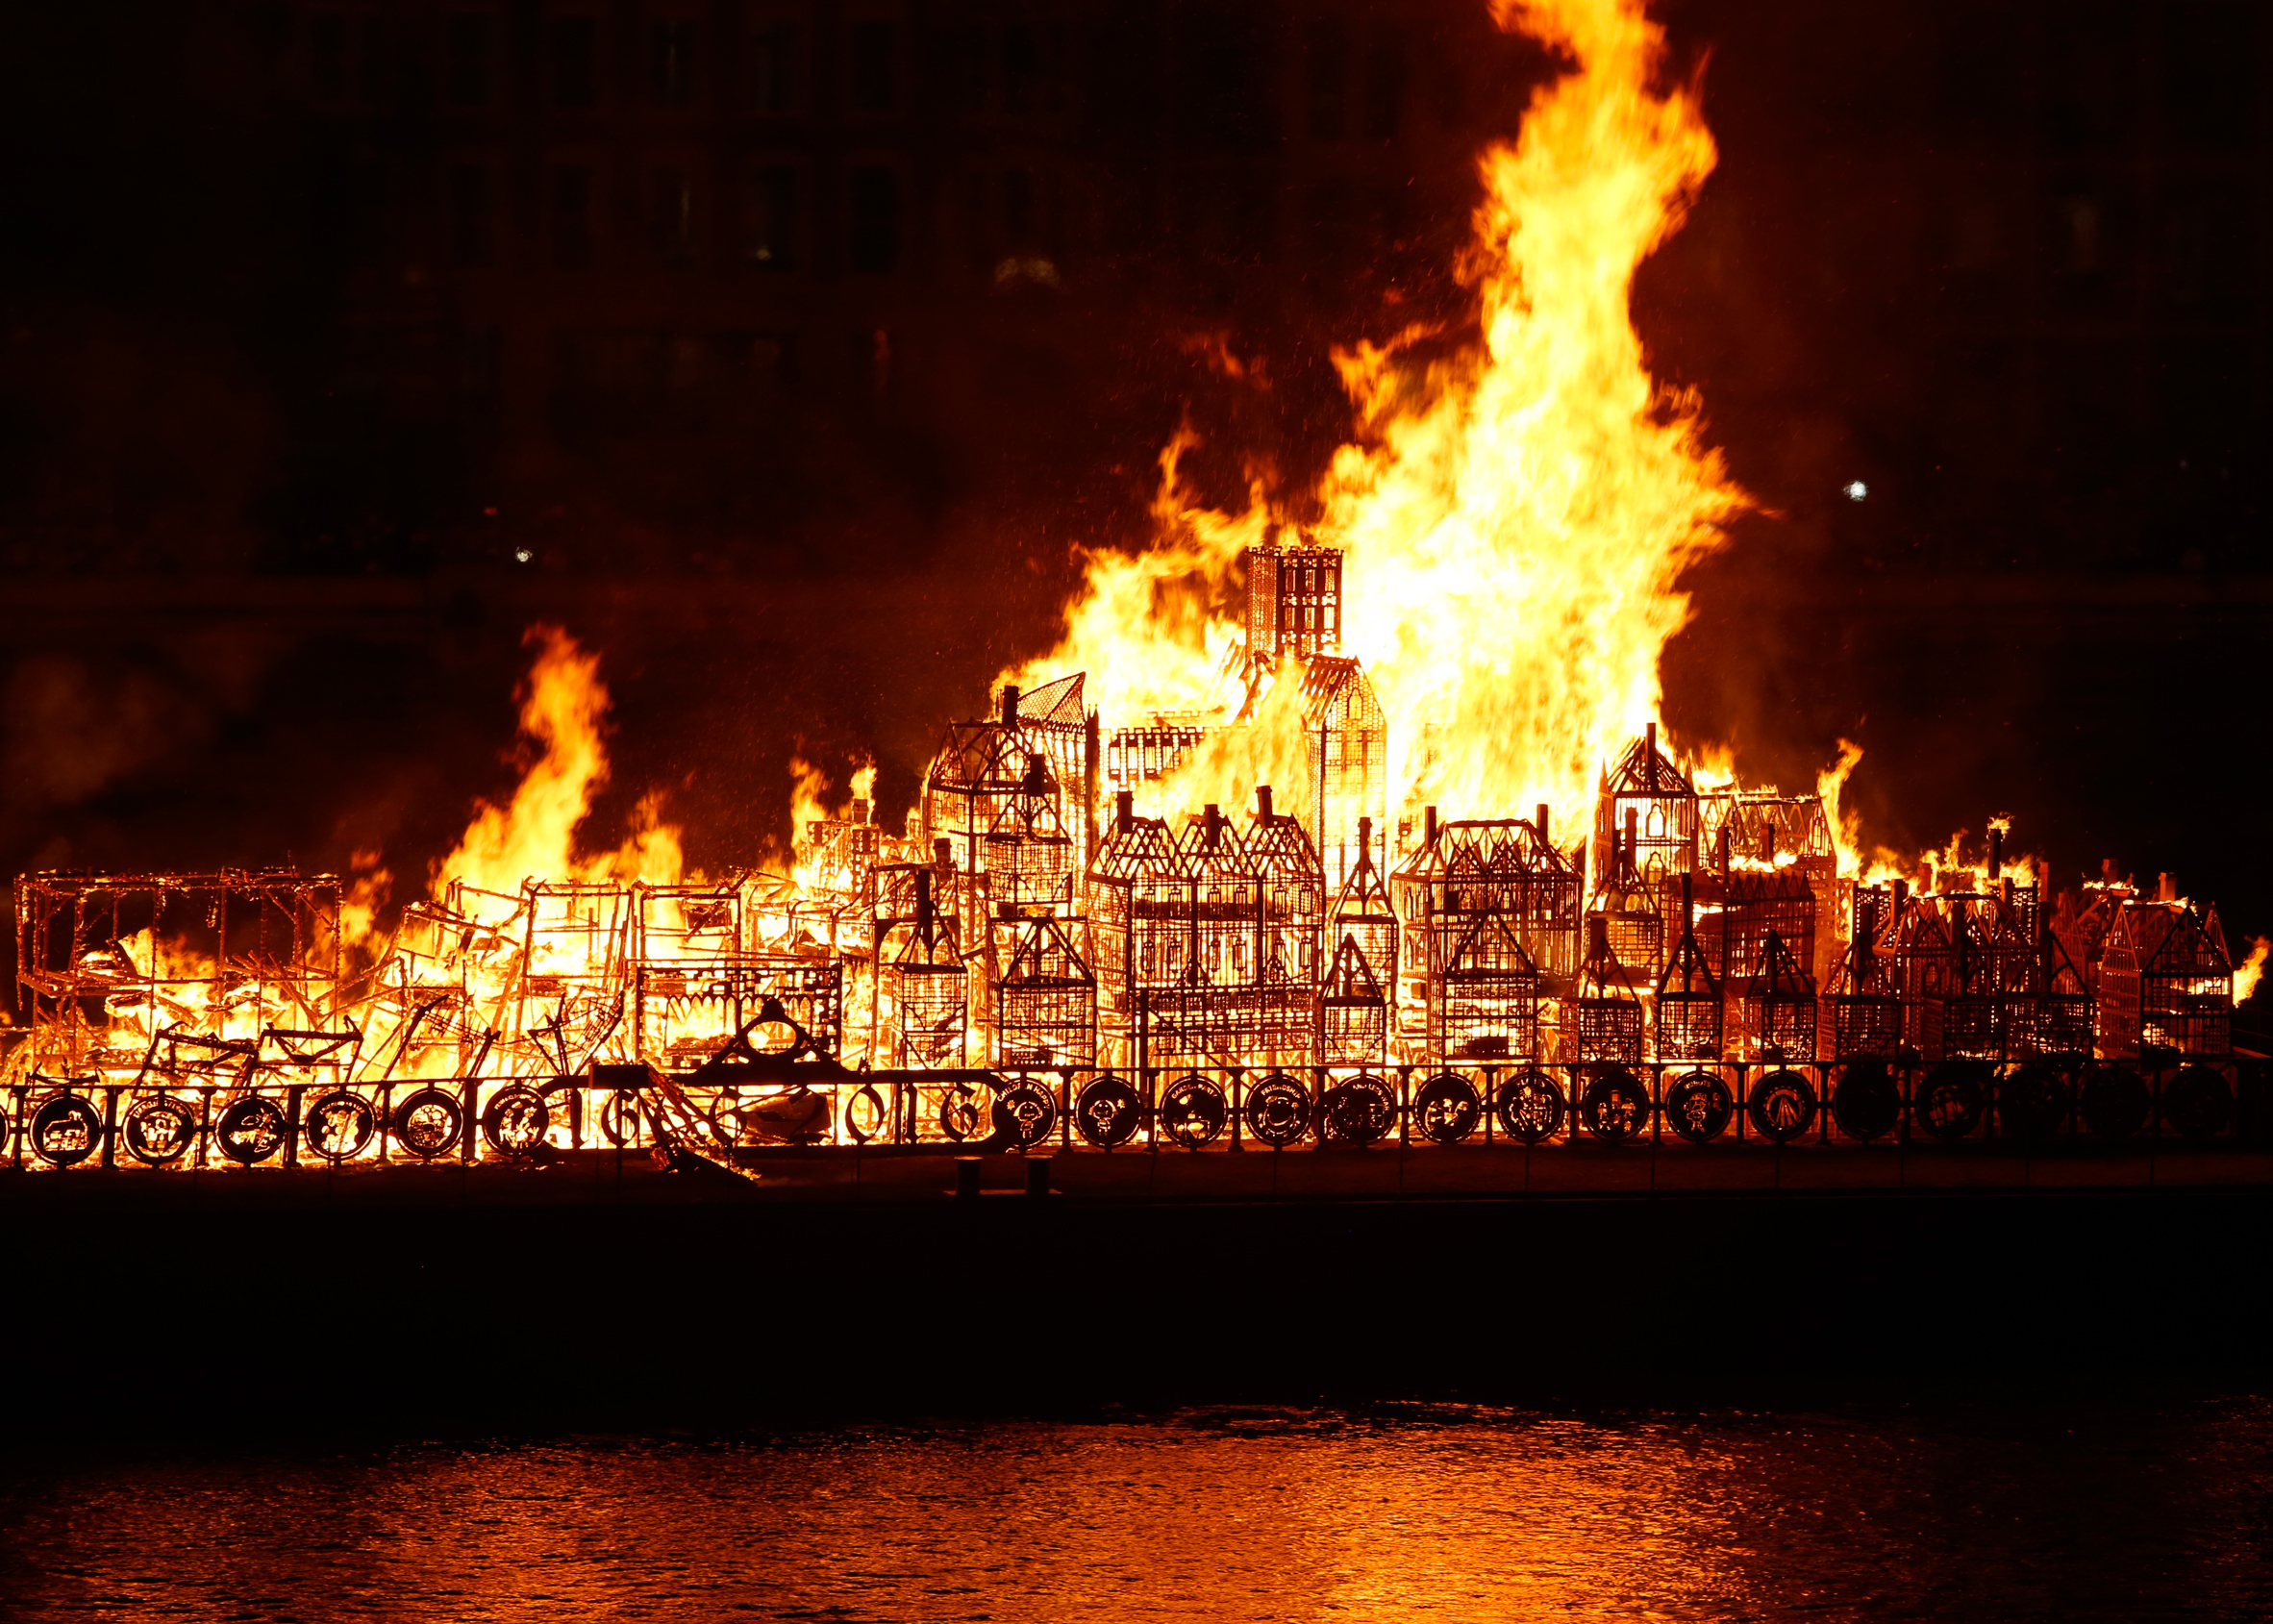 London set ablaze for Great Fire anniversary